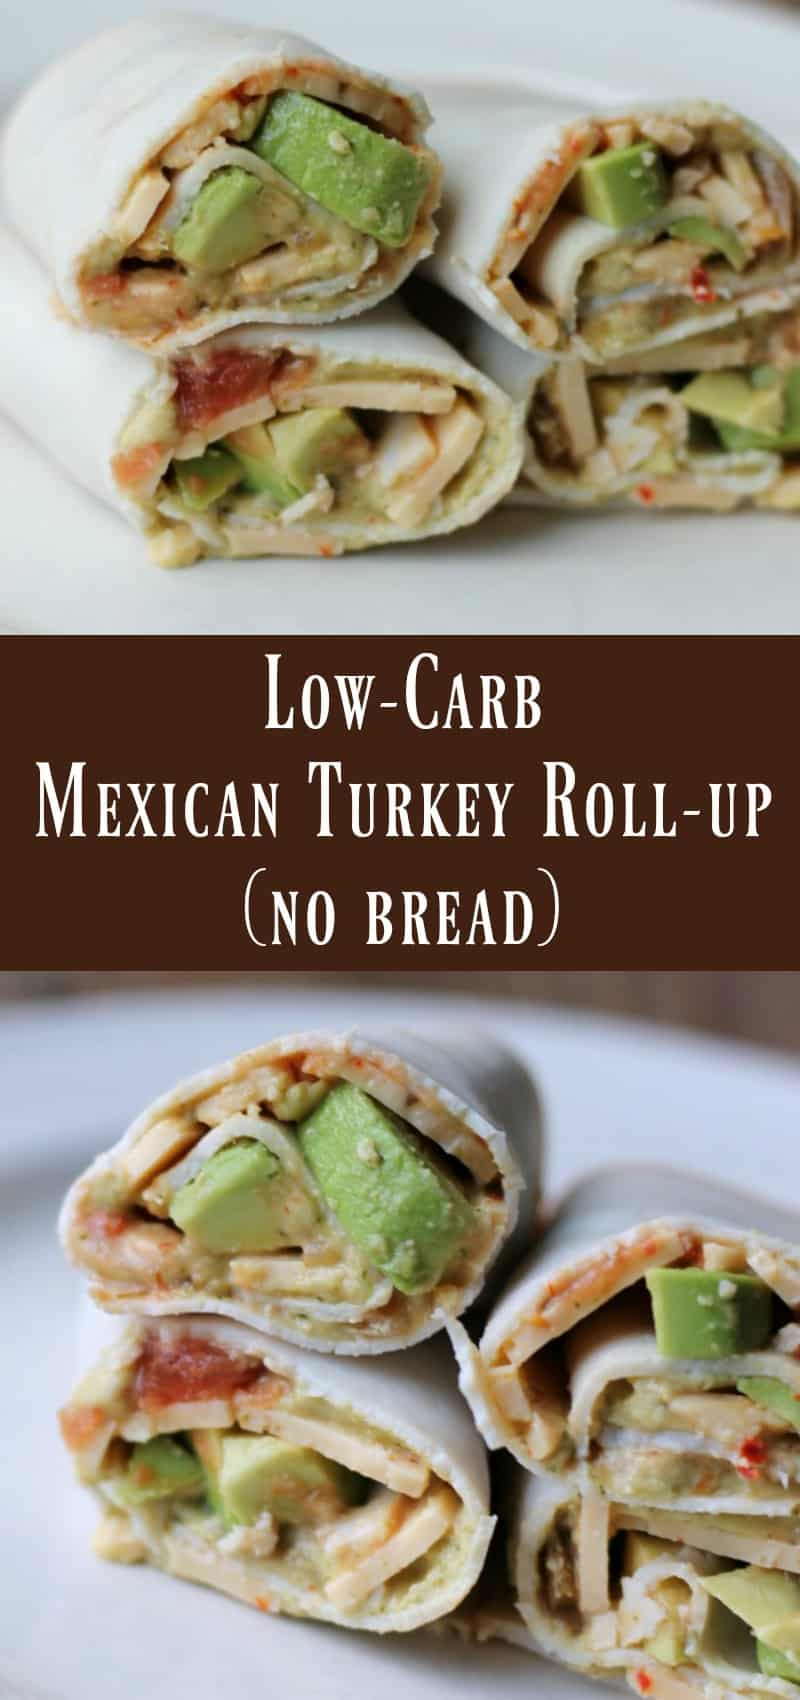 Low-carb Mexican Turkey Roll-up - Organize Yourself Skinny